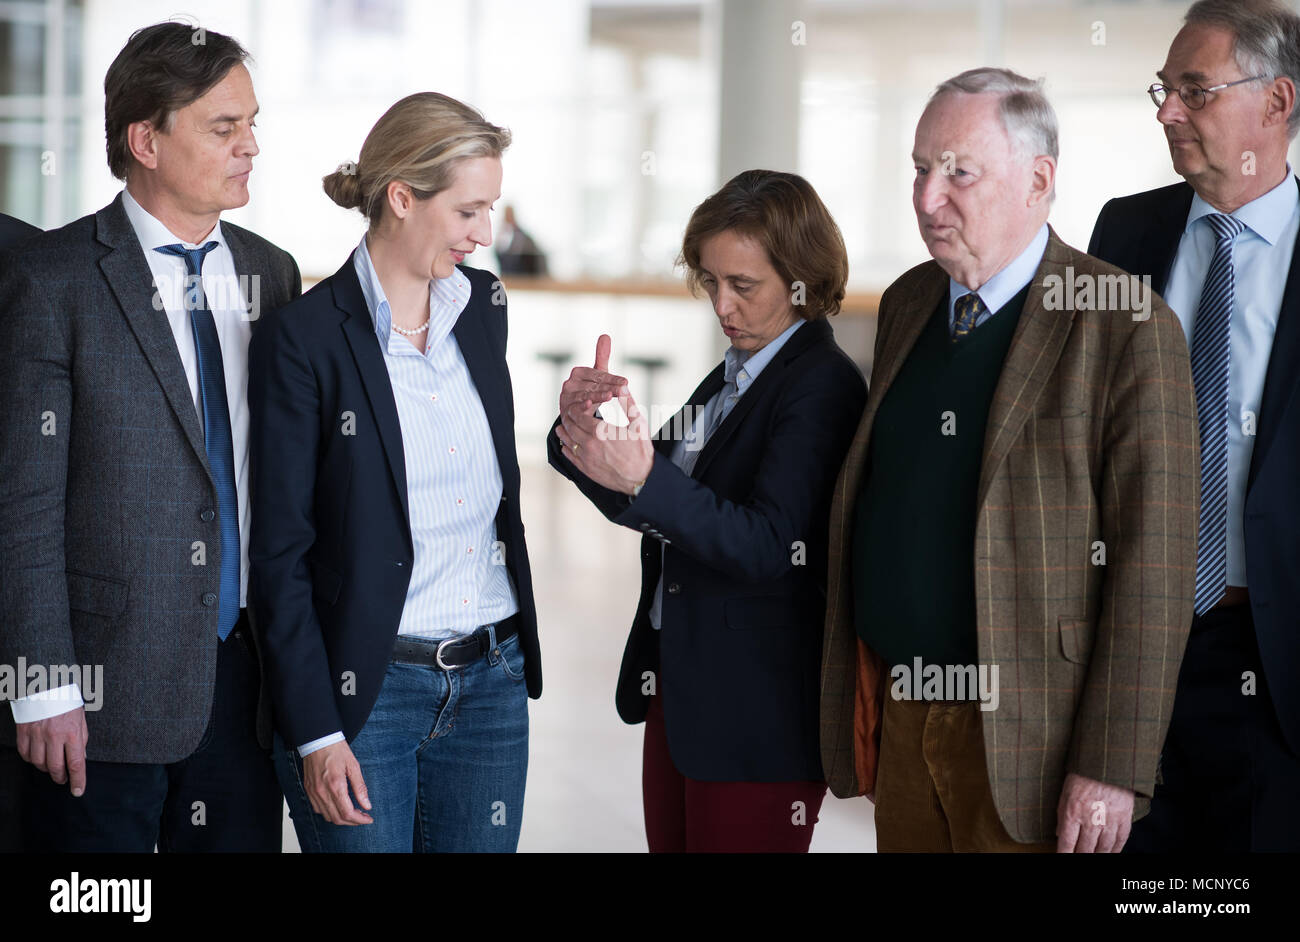 Christoph Storch afd germany storch stock photos afd germany storch stock images